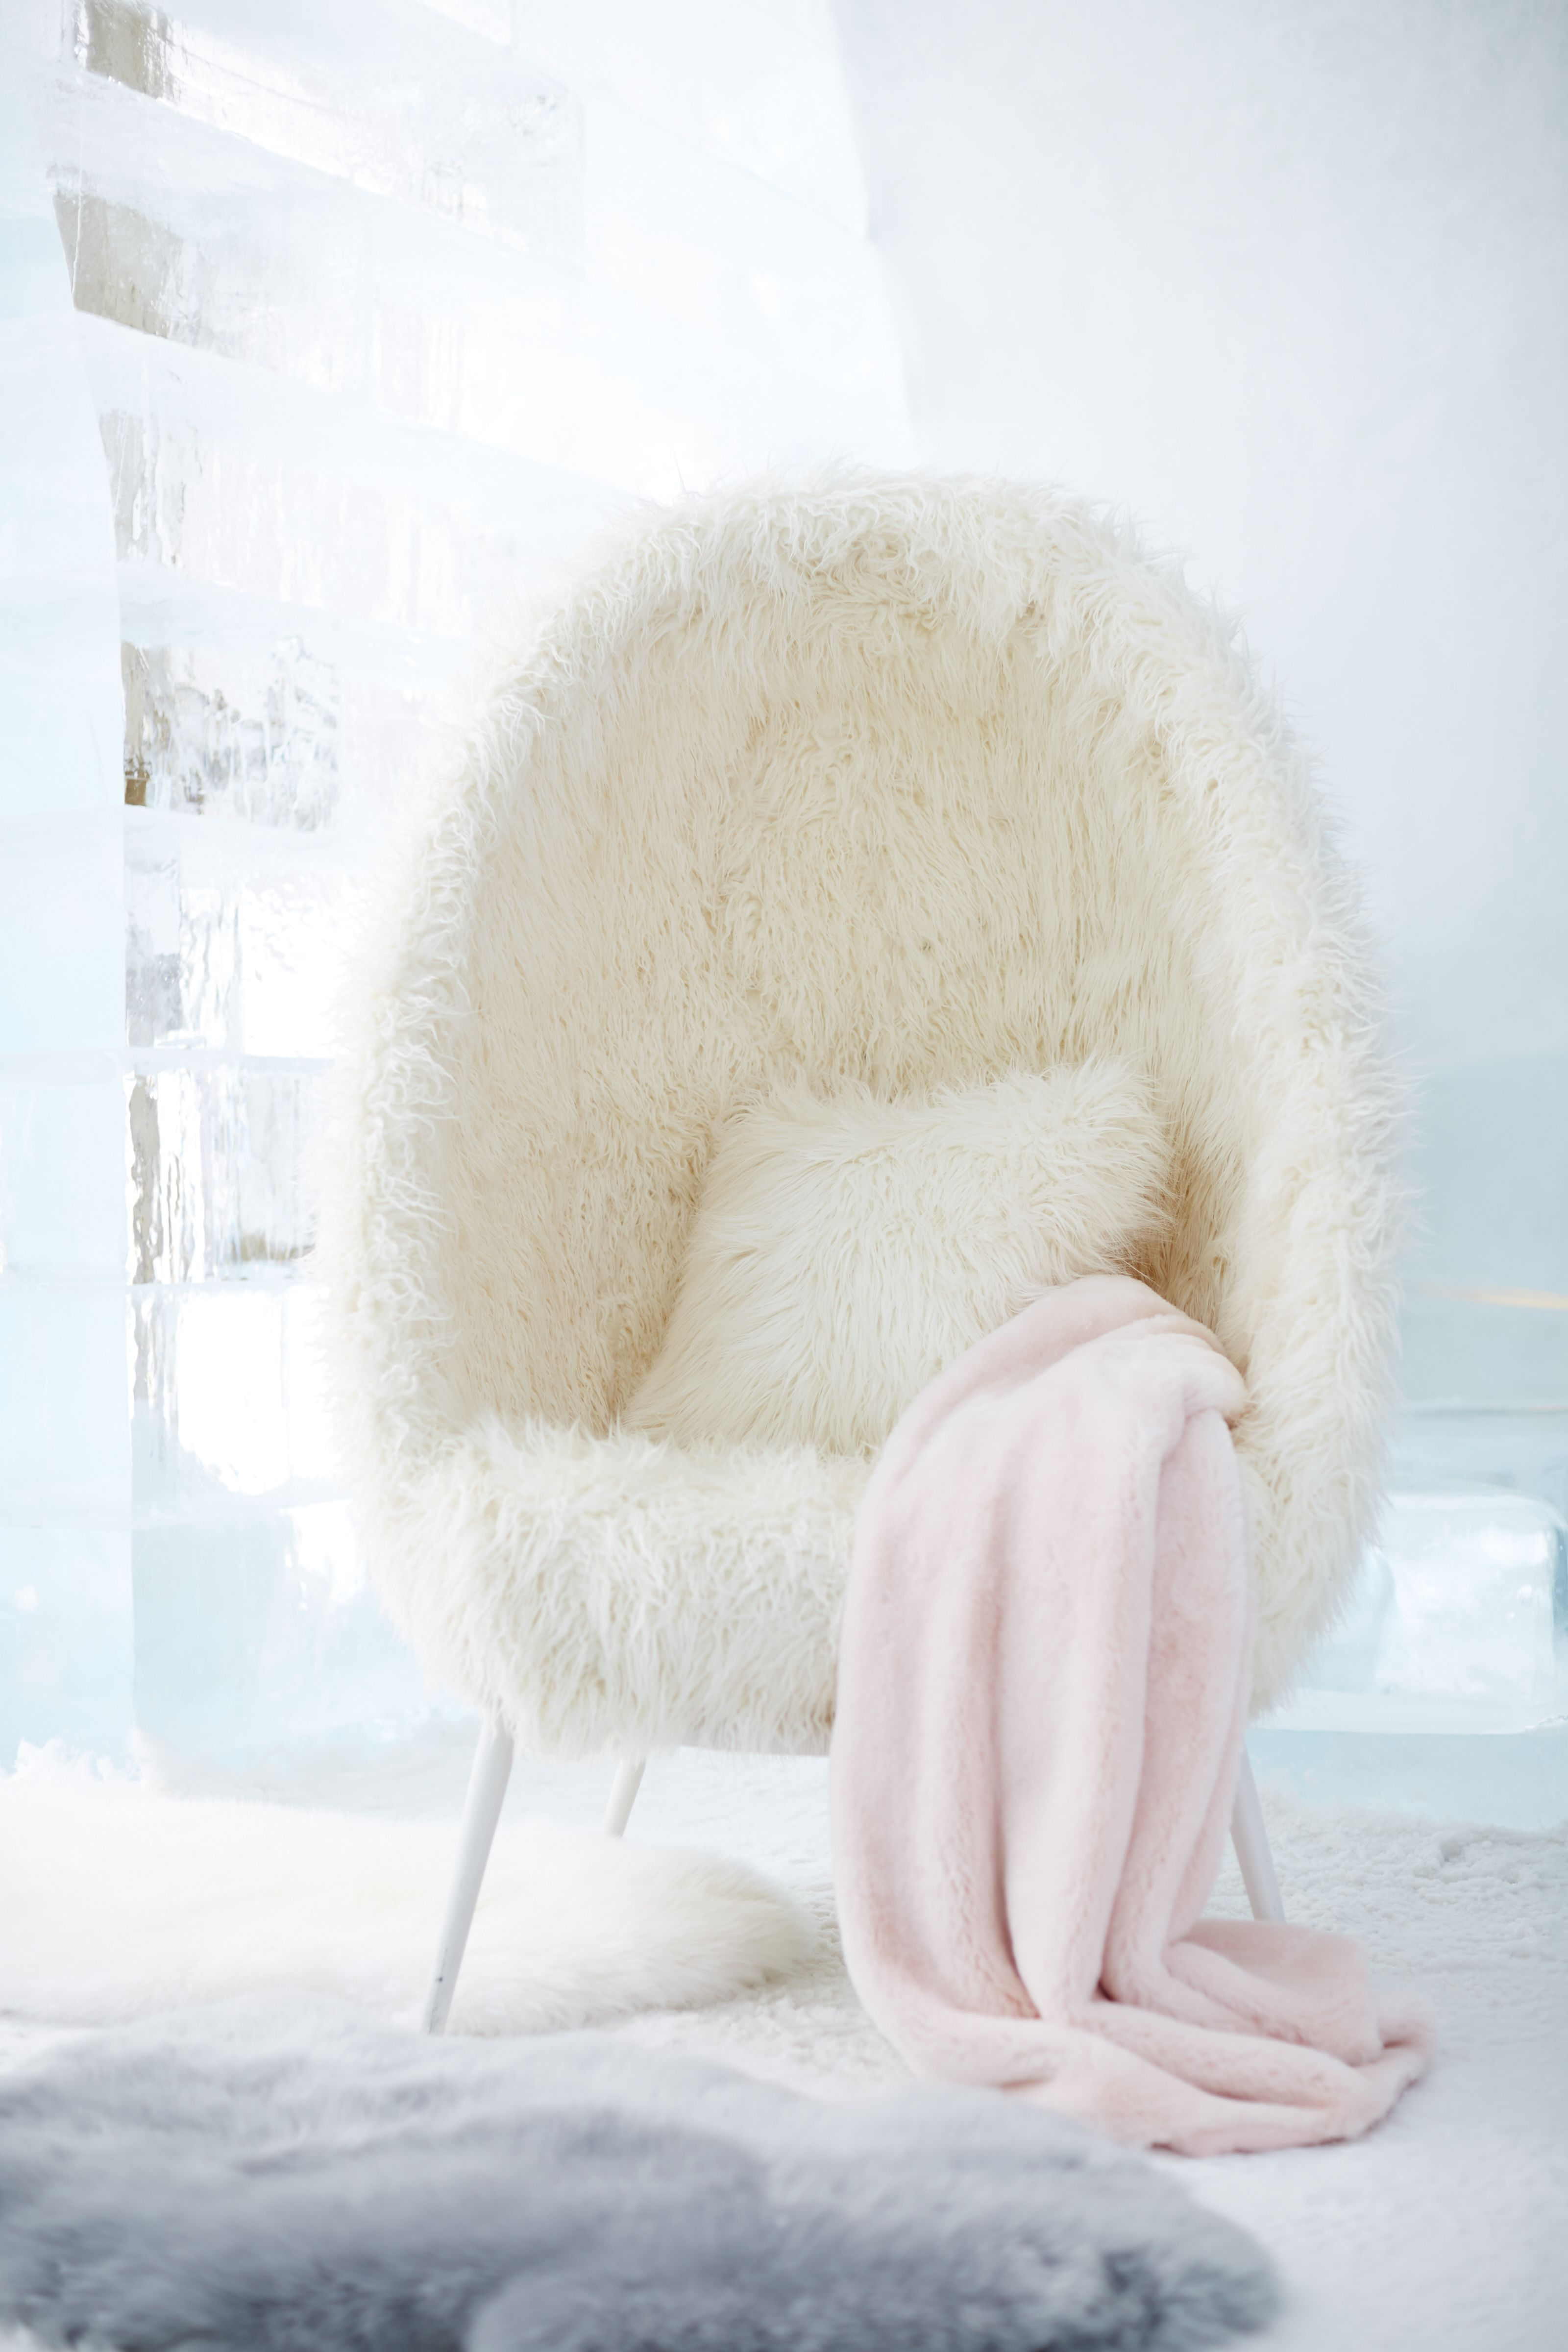 Pottery Barn Teen Furlicious Egg Chair is part of Unique chairs design - DETAILS YOU'LL APPRECIATE Superiorquality faux fur  Made of sturdy iron  KEY PRODUCT POINTS Comfortable polyester and foam  Legs finished in Simply White